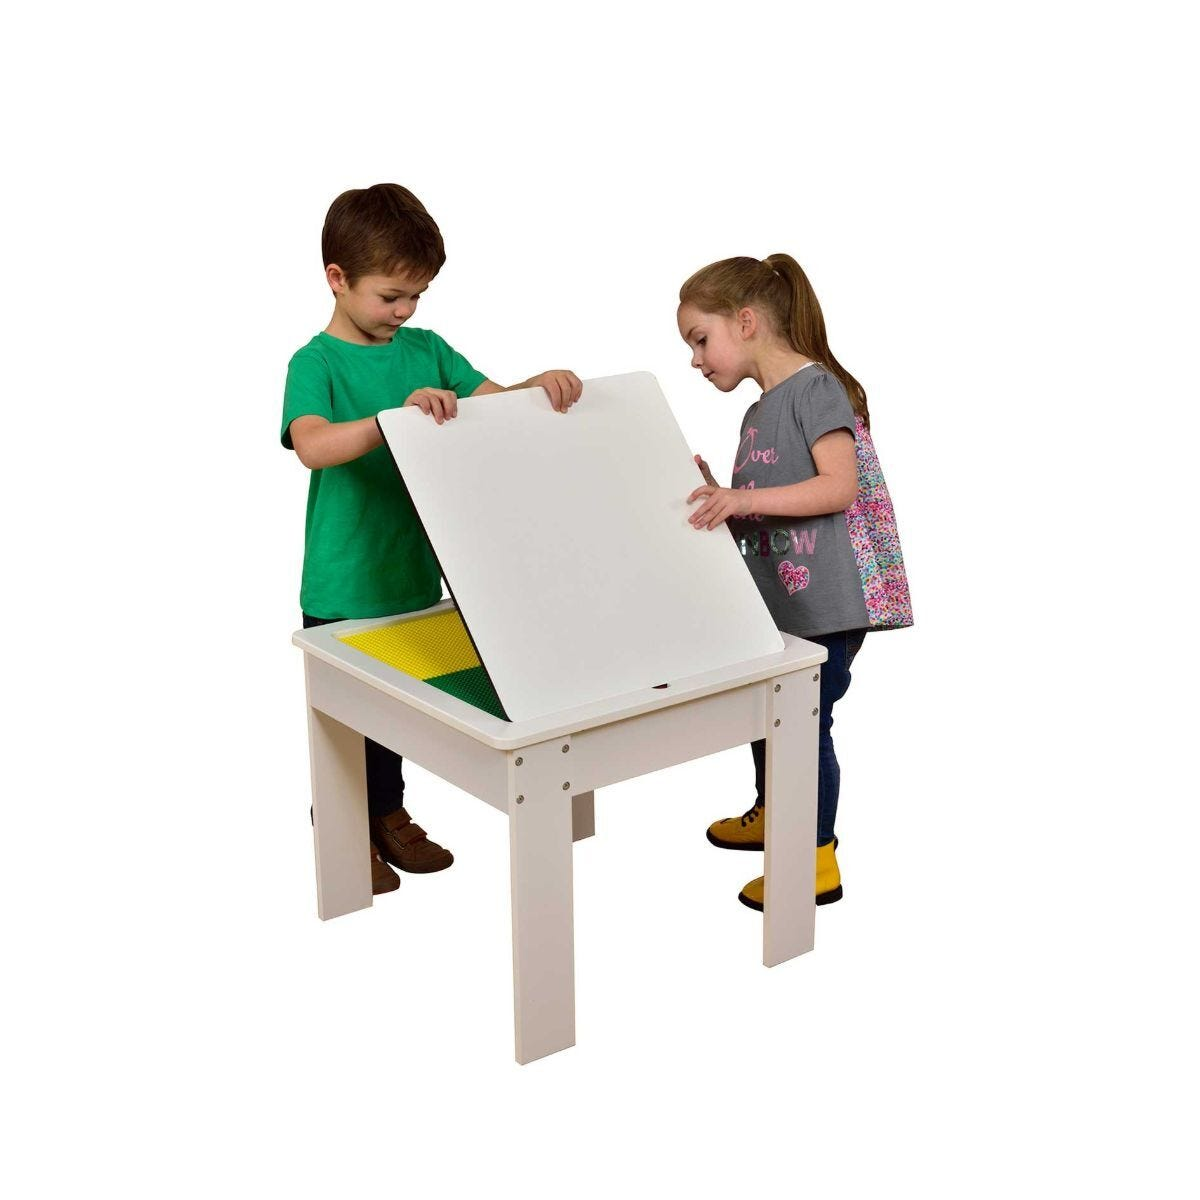 Childrens 4 in 1 Wooden Play Table